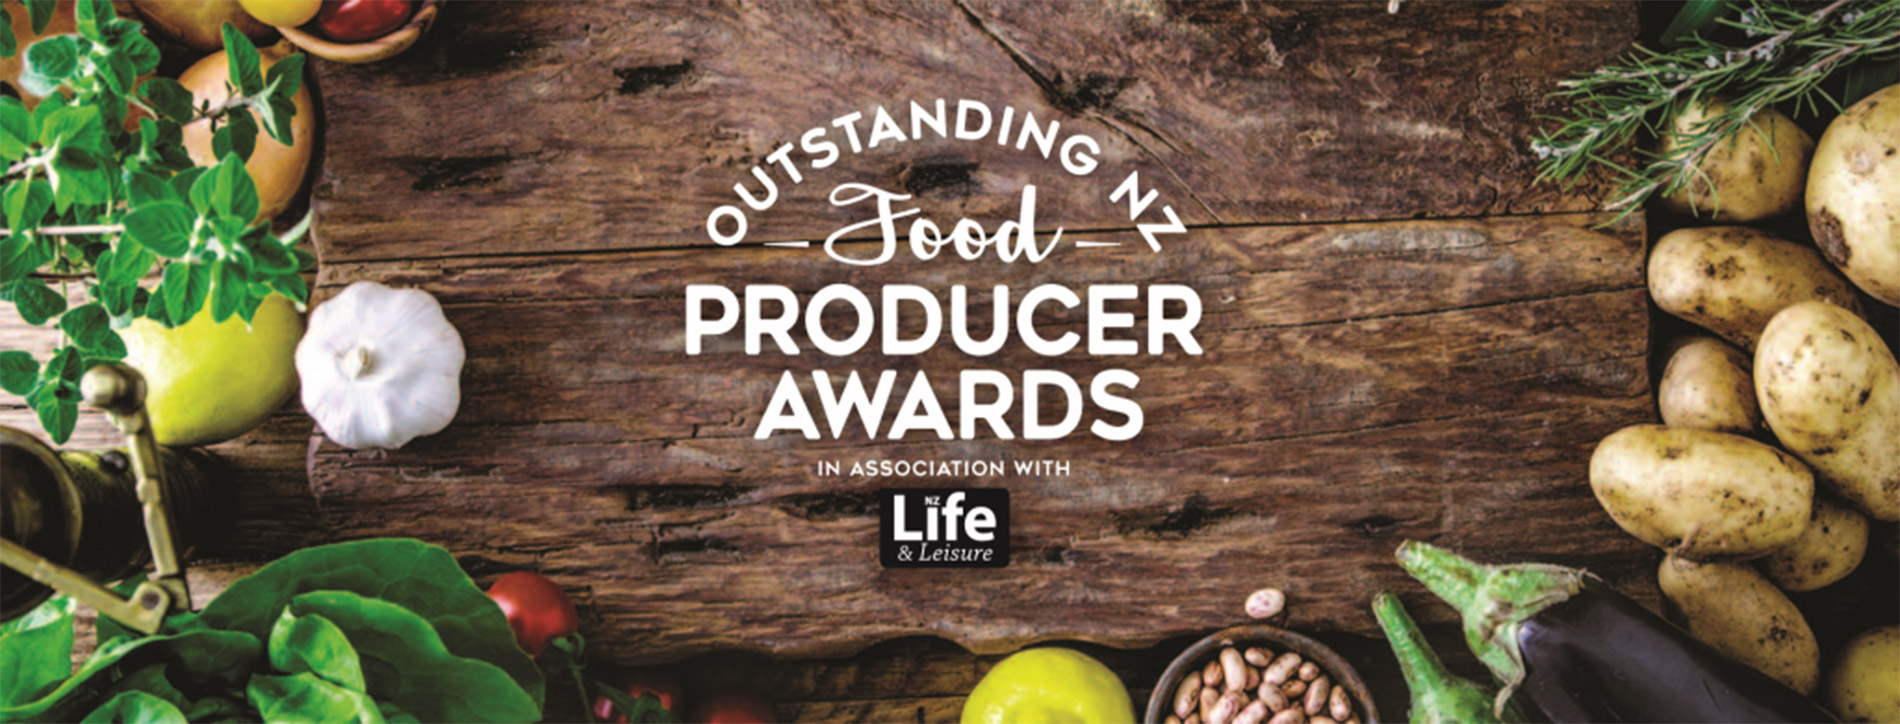 outstanding-nz-food-producer-awards.jpg